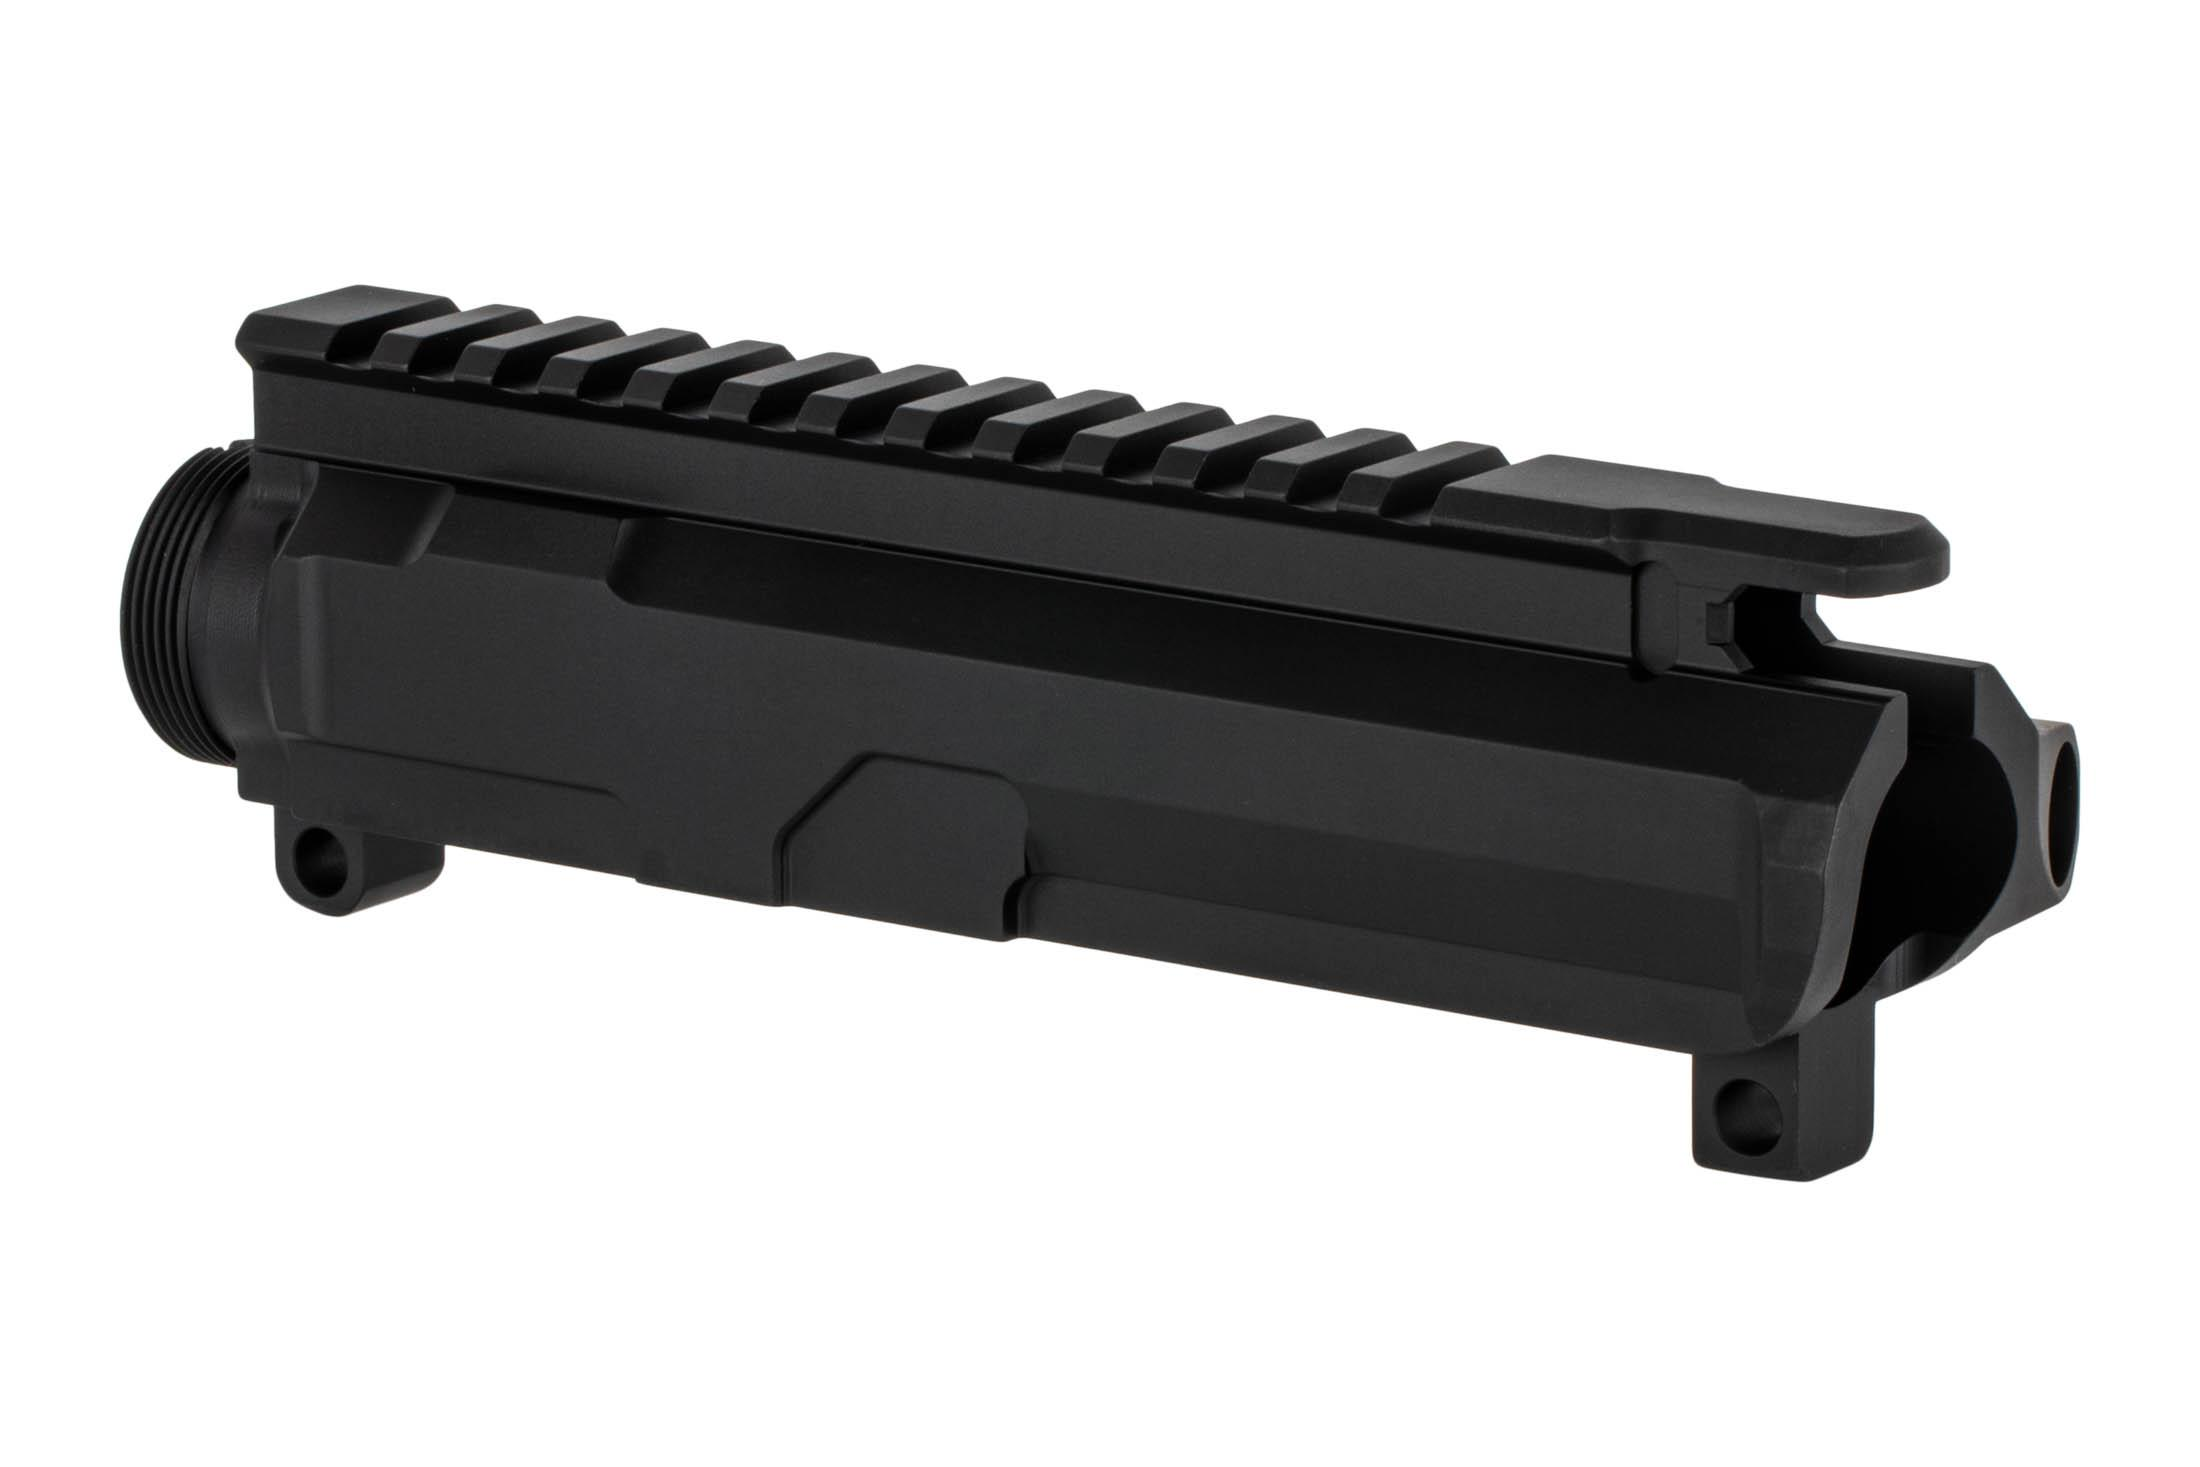 The Centurion Arms C4 Stripped AR15 upper receiver features an M4 picatinny flat top